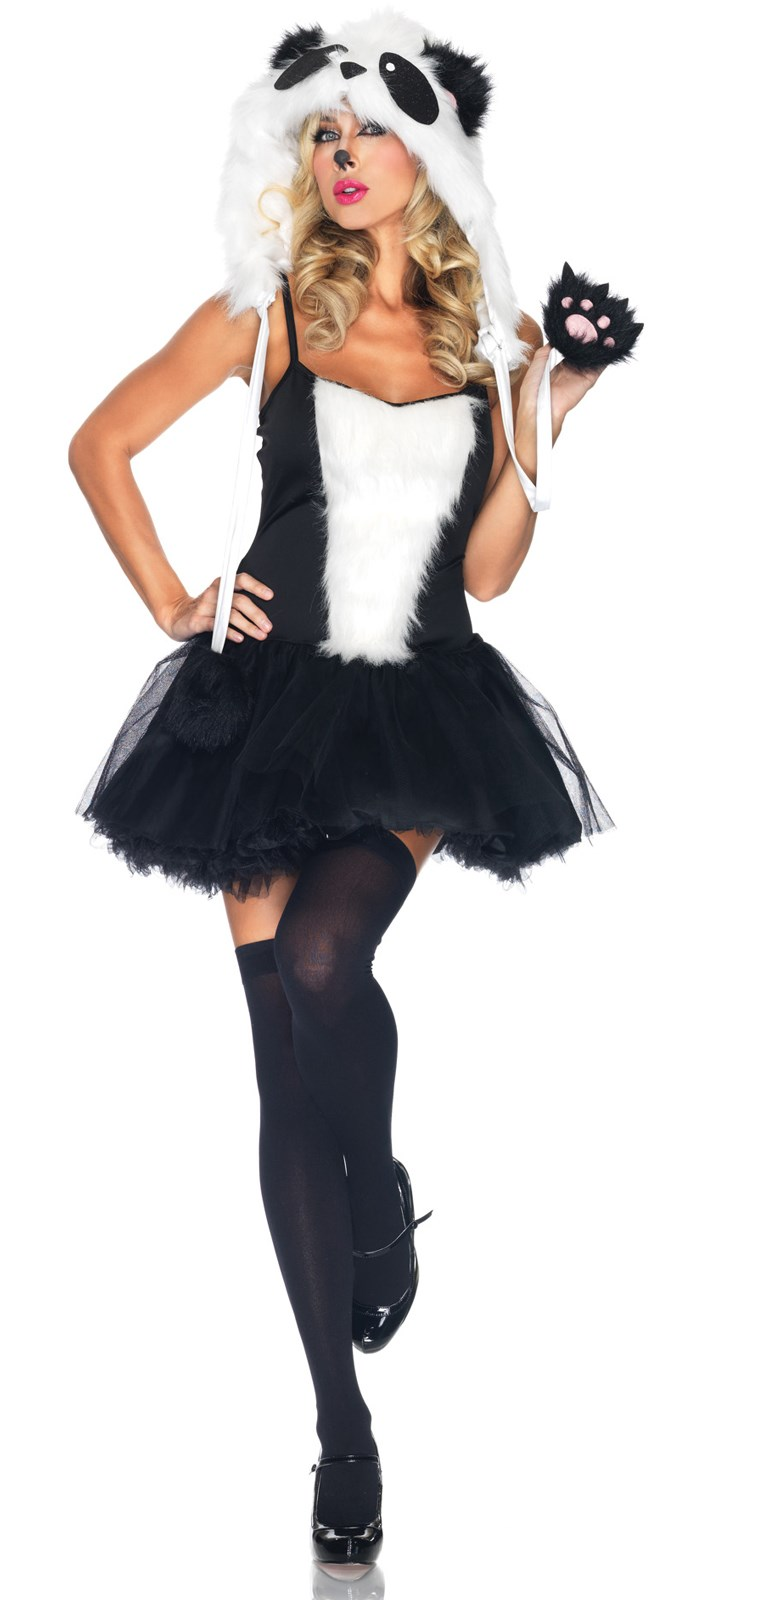 Playful Panda Adult Costume